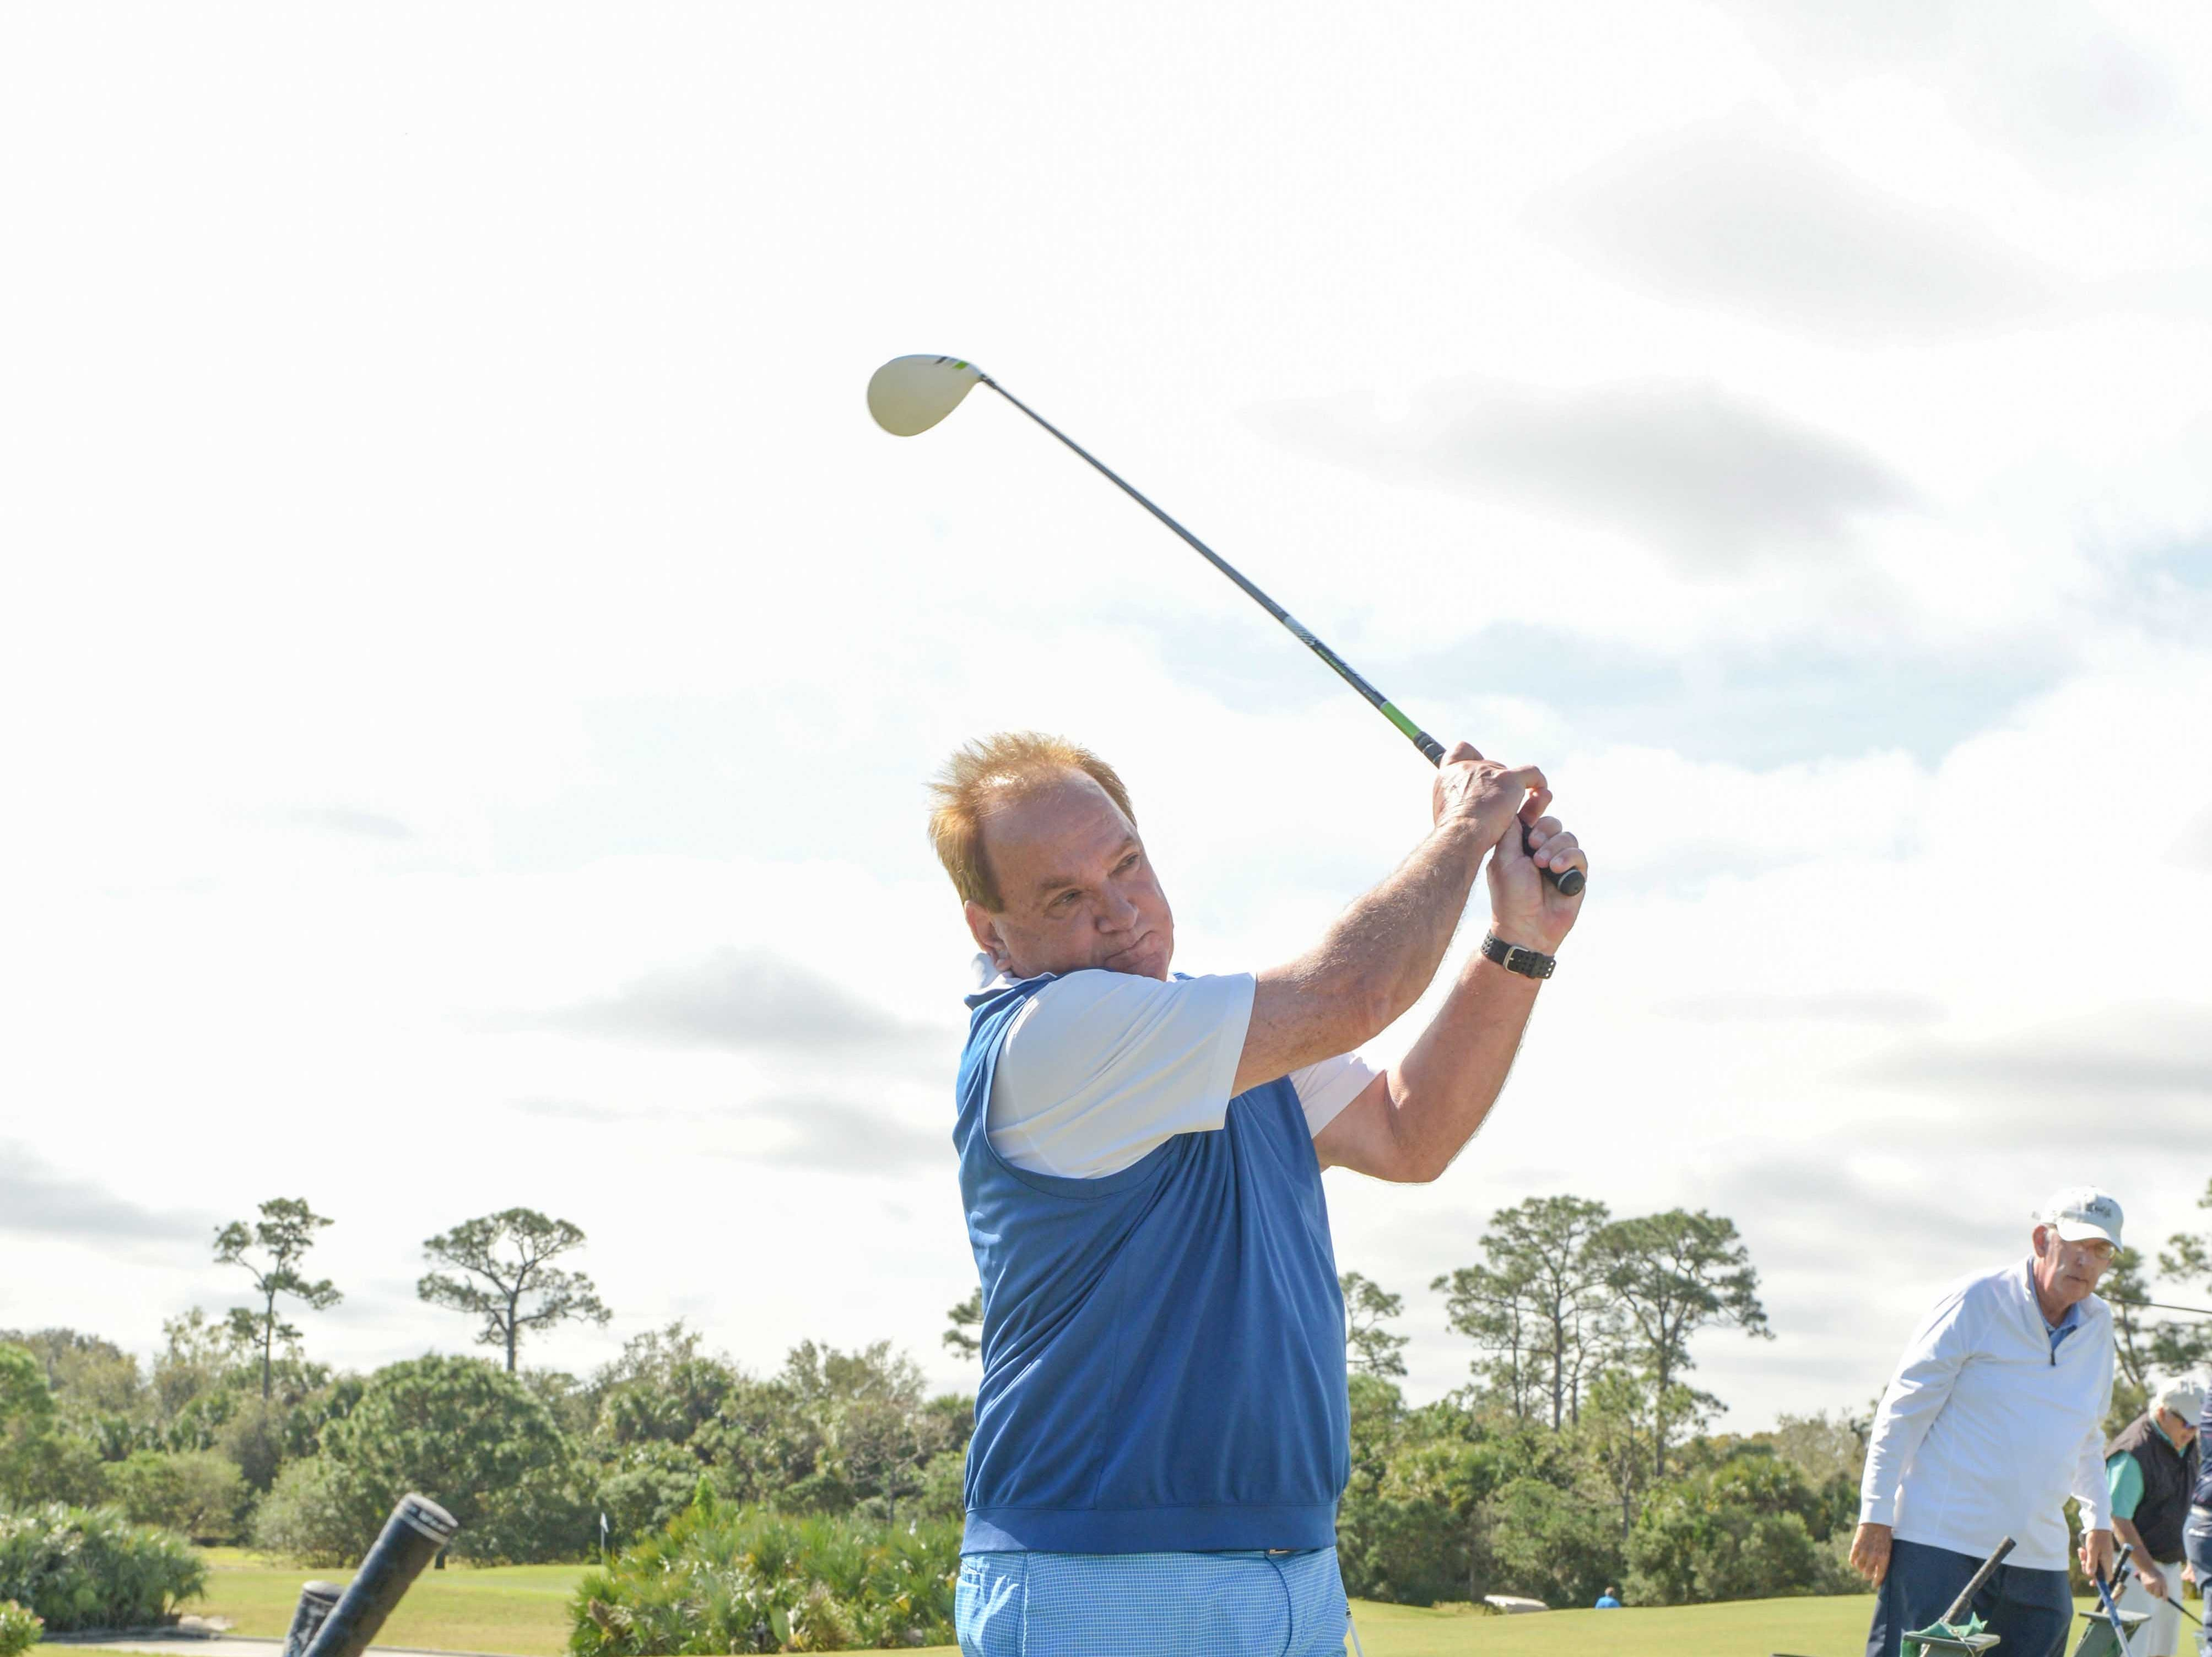 Dennis Witherow hits a few practice shots at Hawk's Nest Golf Club for the Big Brothers Big Sisters Golf Tournament on Feb. 4.